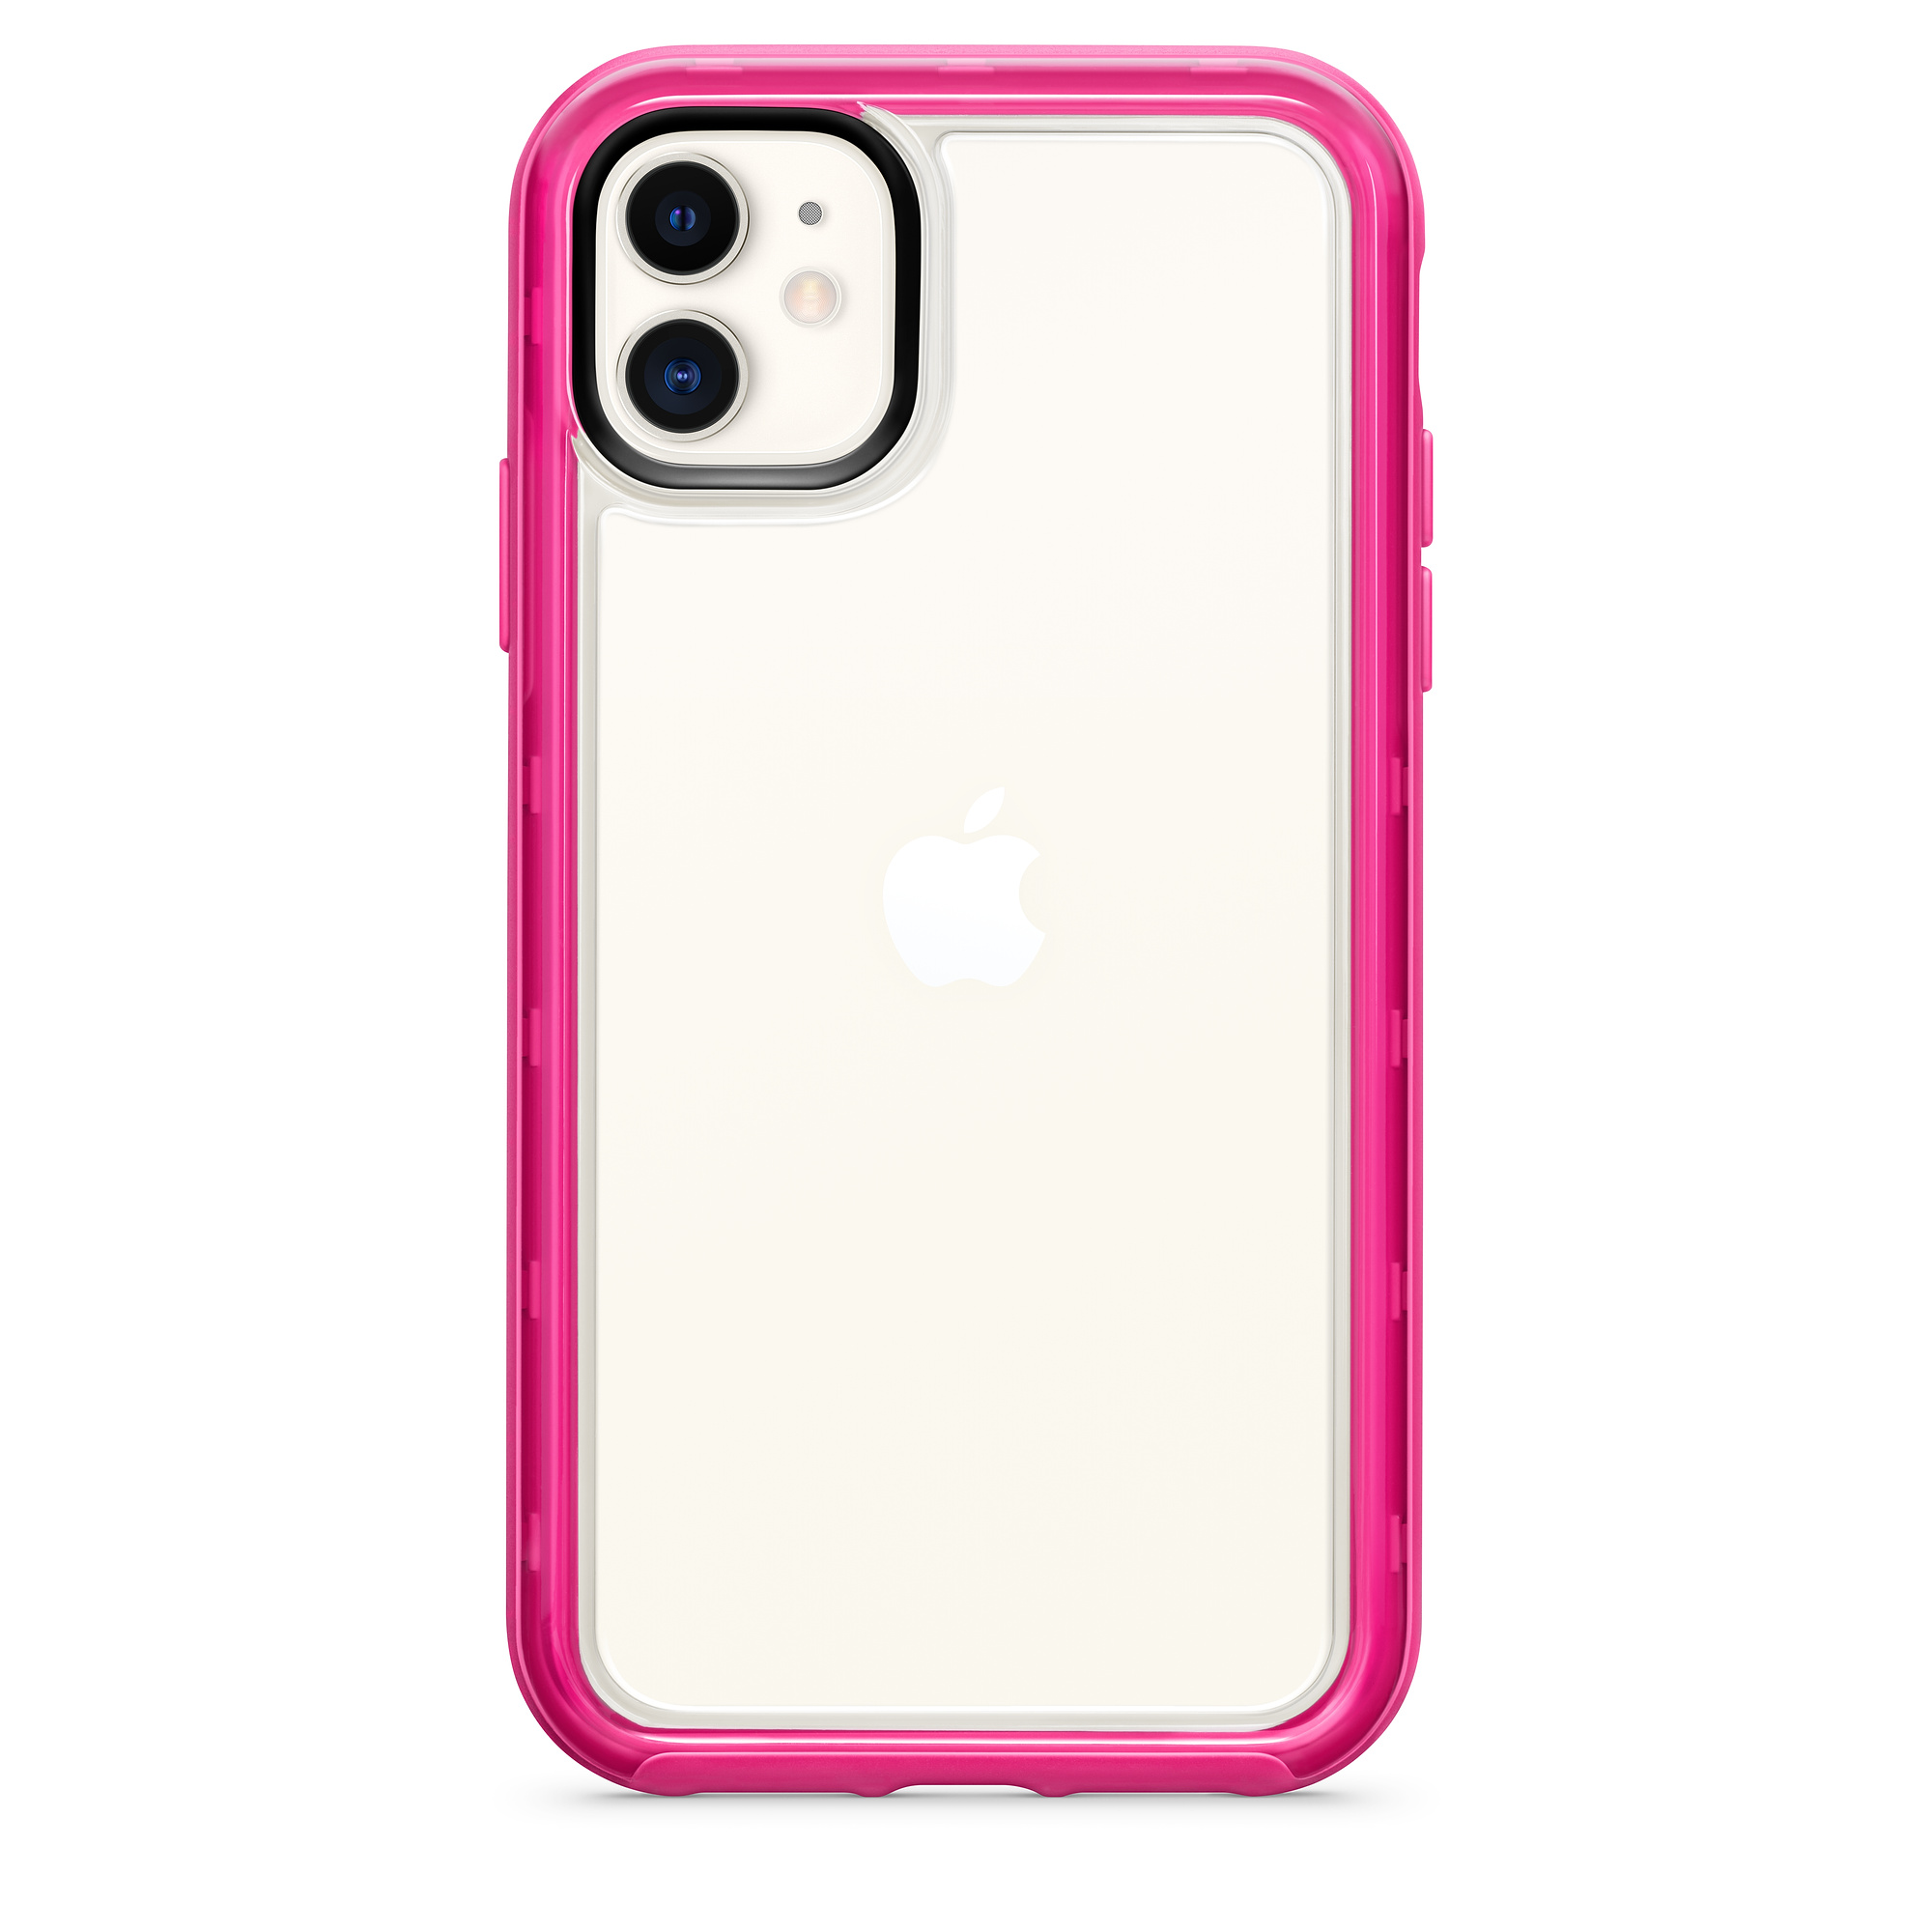 OtterBox Lumen clear case for iPhone 11